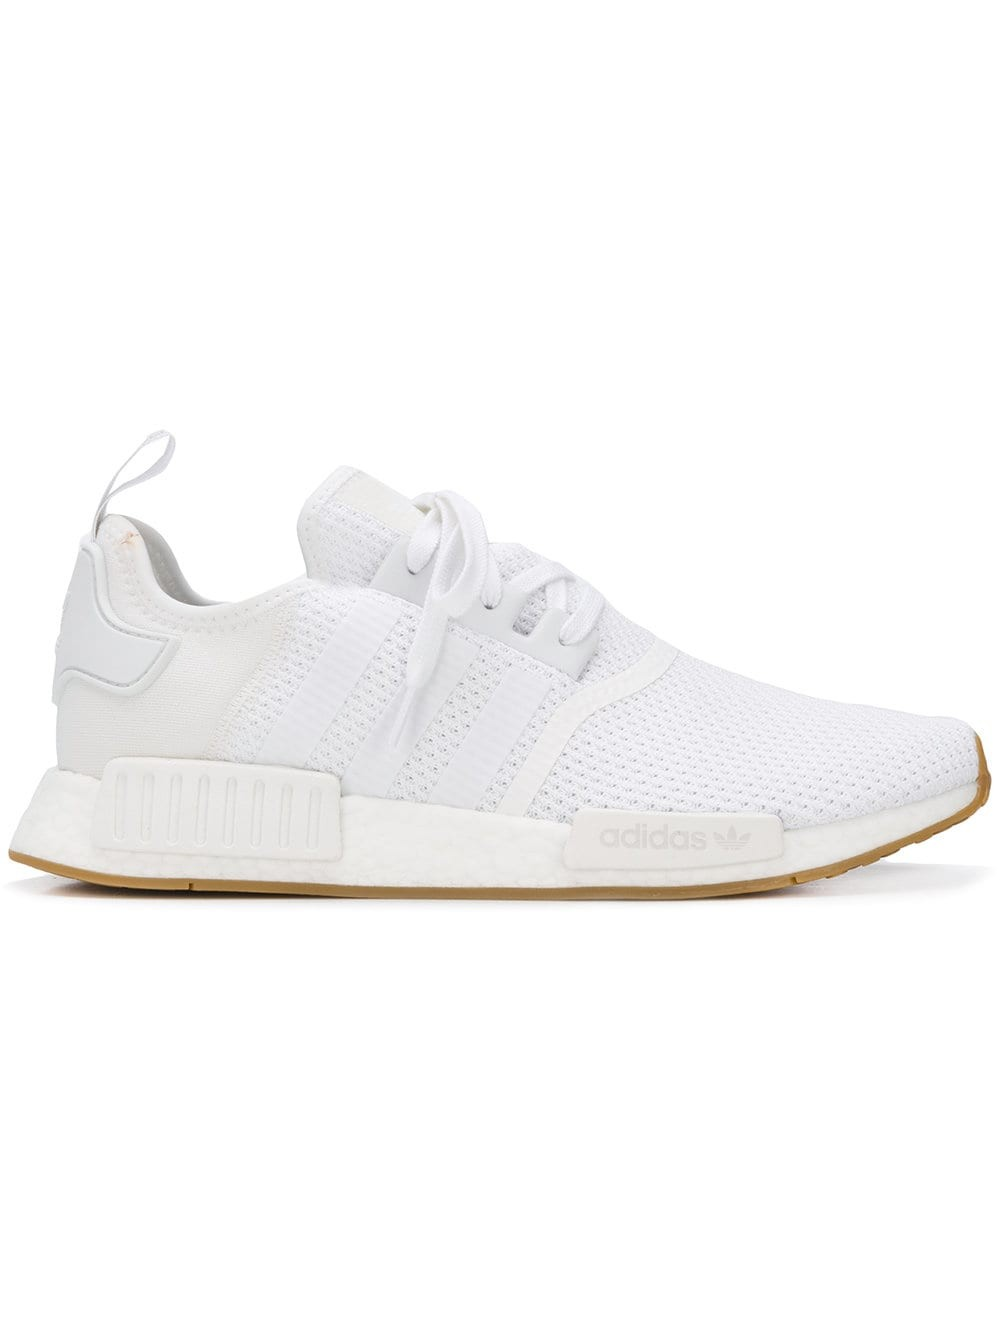 Adidas Originals NMD_R1 | Blanche | Sneakers | D96635